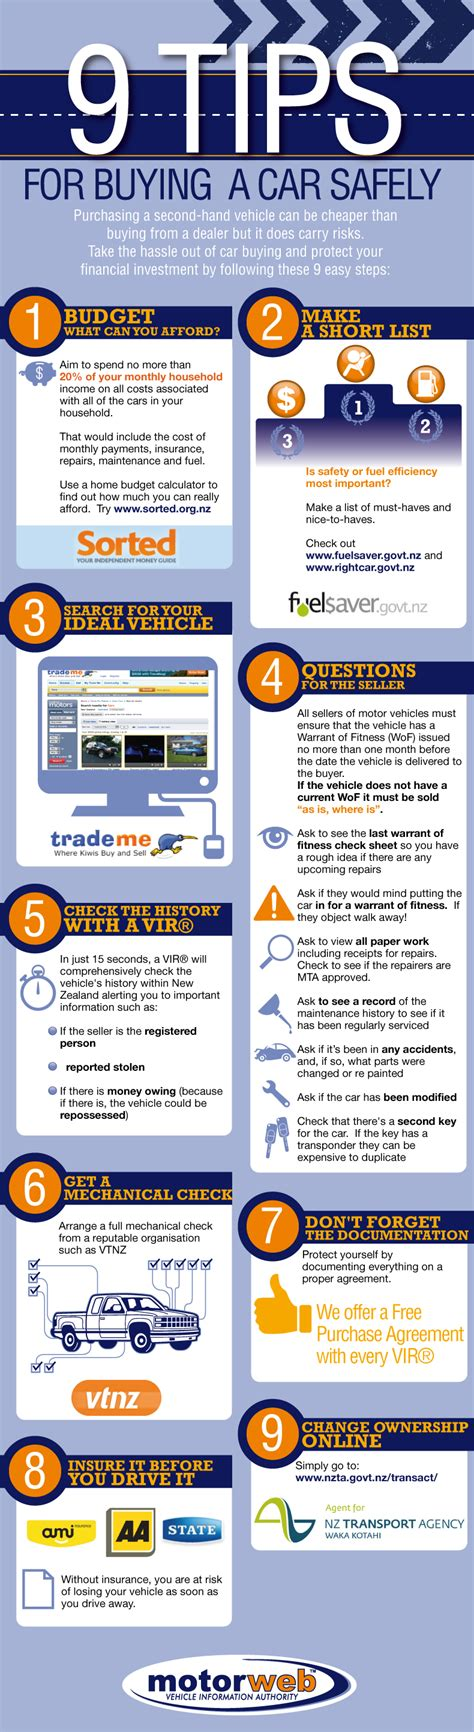 7 Tips On Buying A New Car by 9 Tips For Buy A Car Safely Motorweb Nz